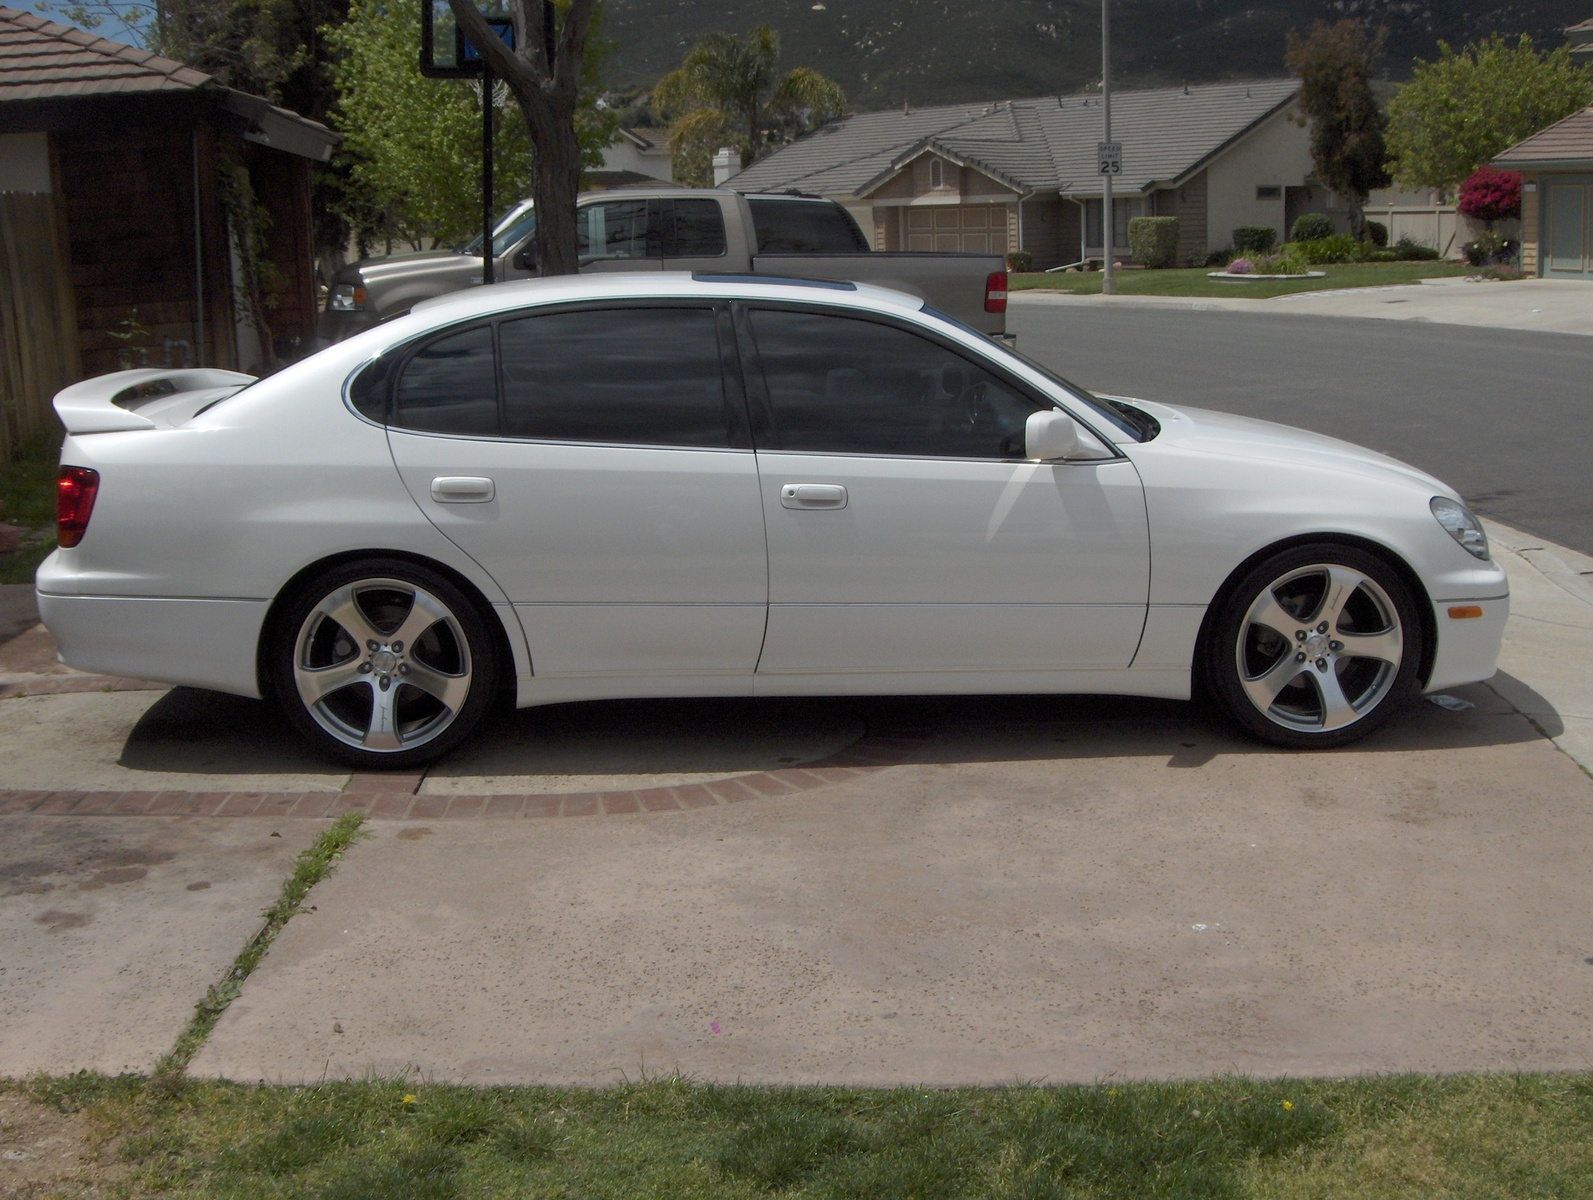 2001 Lexus Gs 430 Information And Photos Zombiedrive